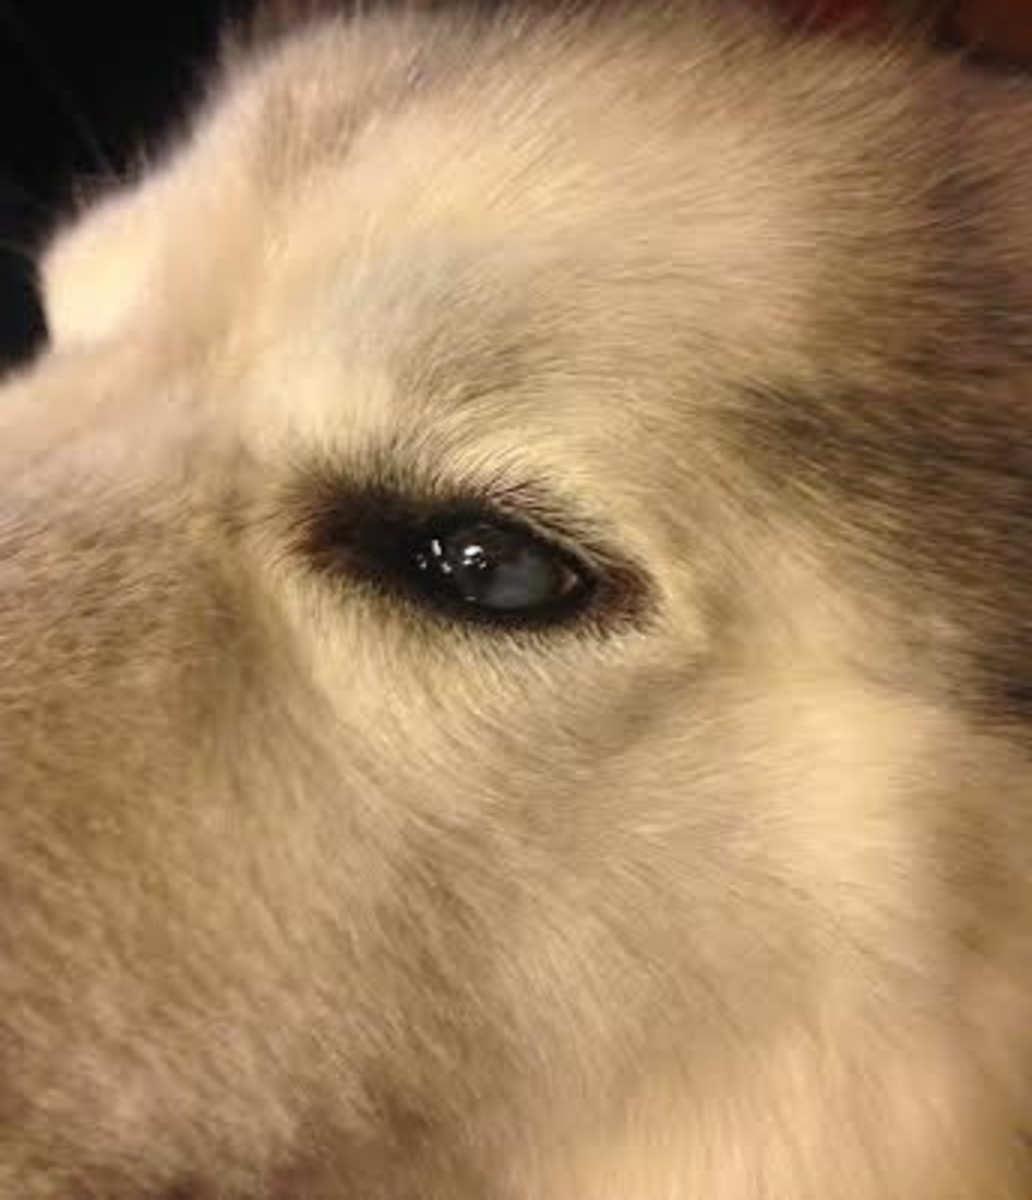 Sam's left eye and has the corneal defect with out the lacrimal gland covering the eye.